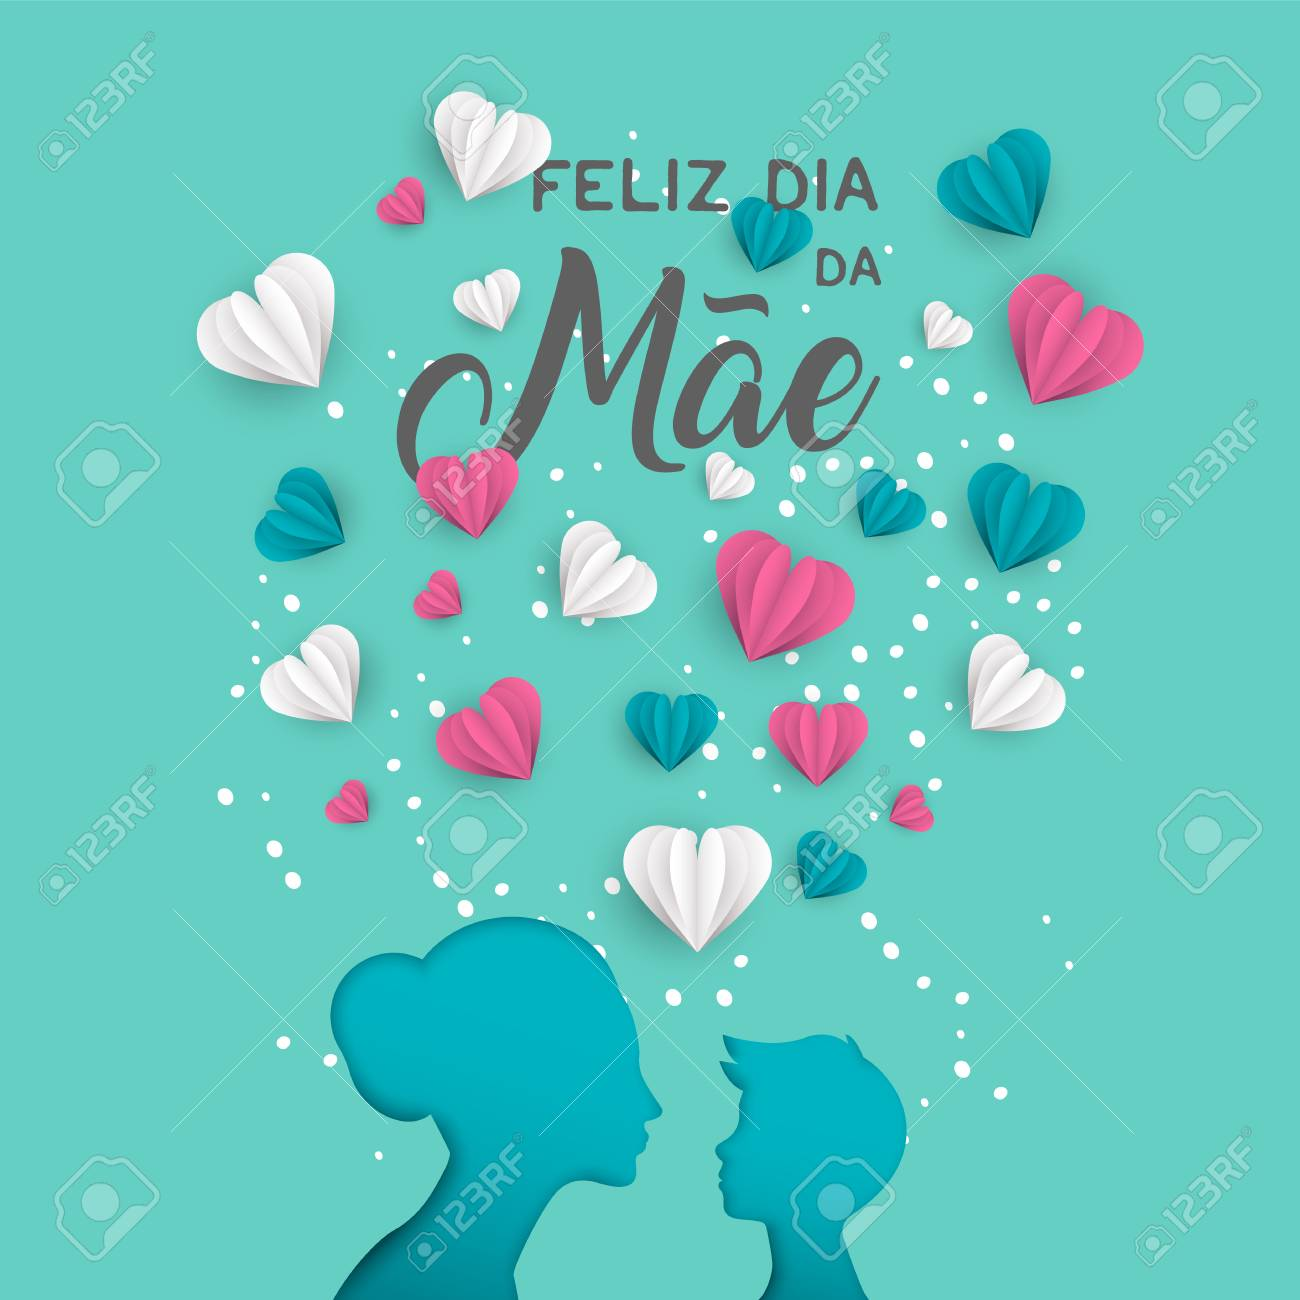 Happy mothers day holiday greeting card illustration in portuguese happy mothers day holiday greeting card illustration in portuguese language pink paper cut mom and m4hsunfo Images